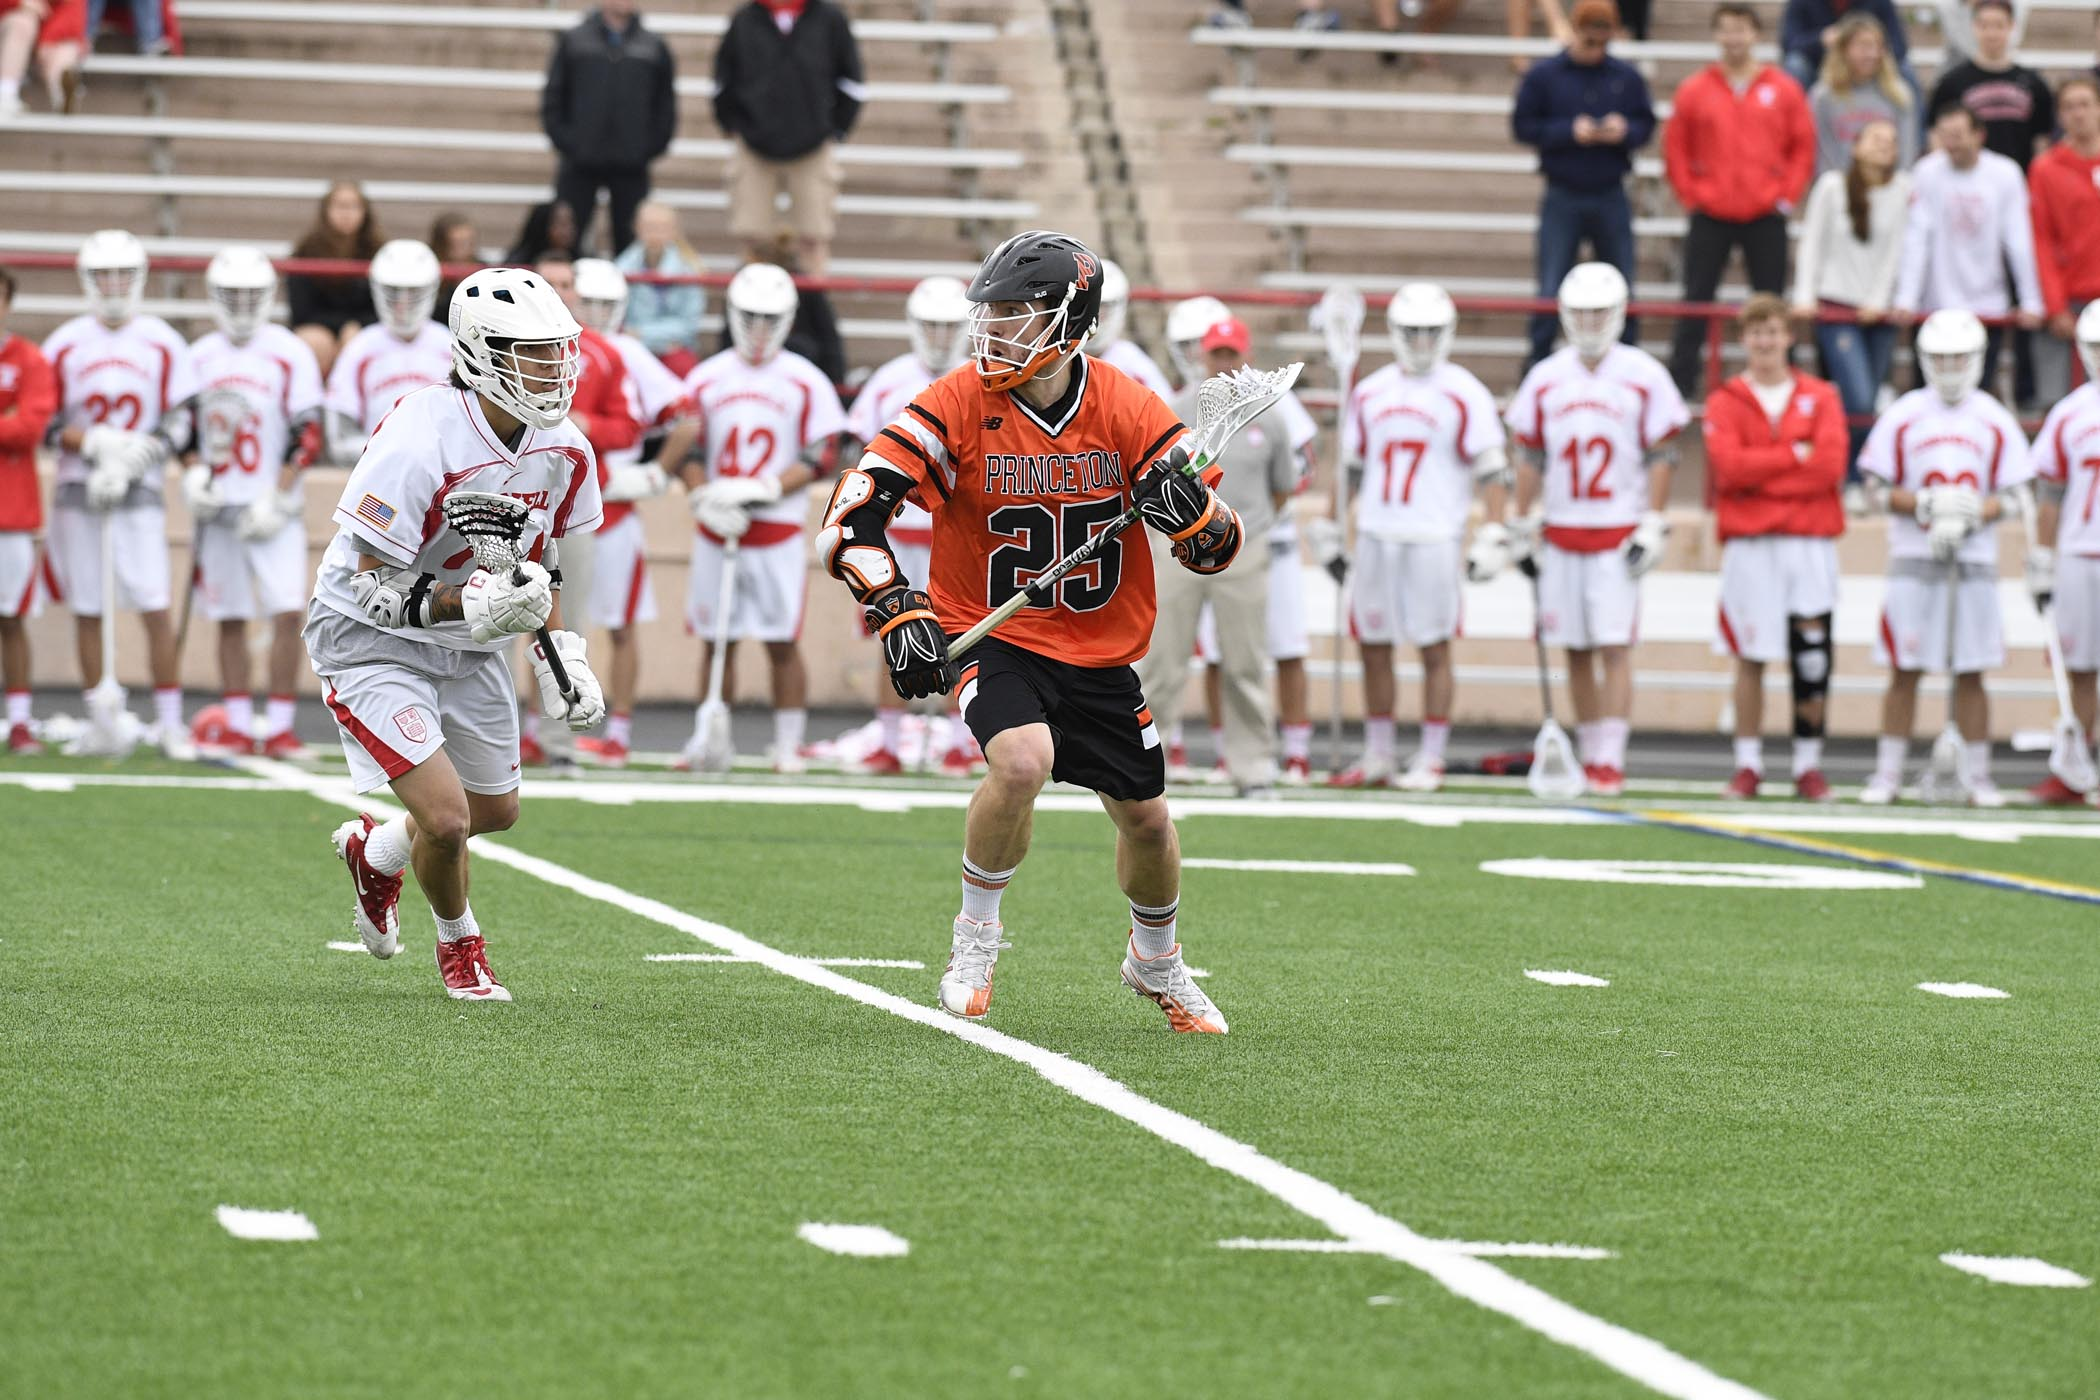 Zach Currier of the Princeton Tigers. (Photo credit: Robert Goldstein)